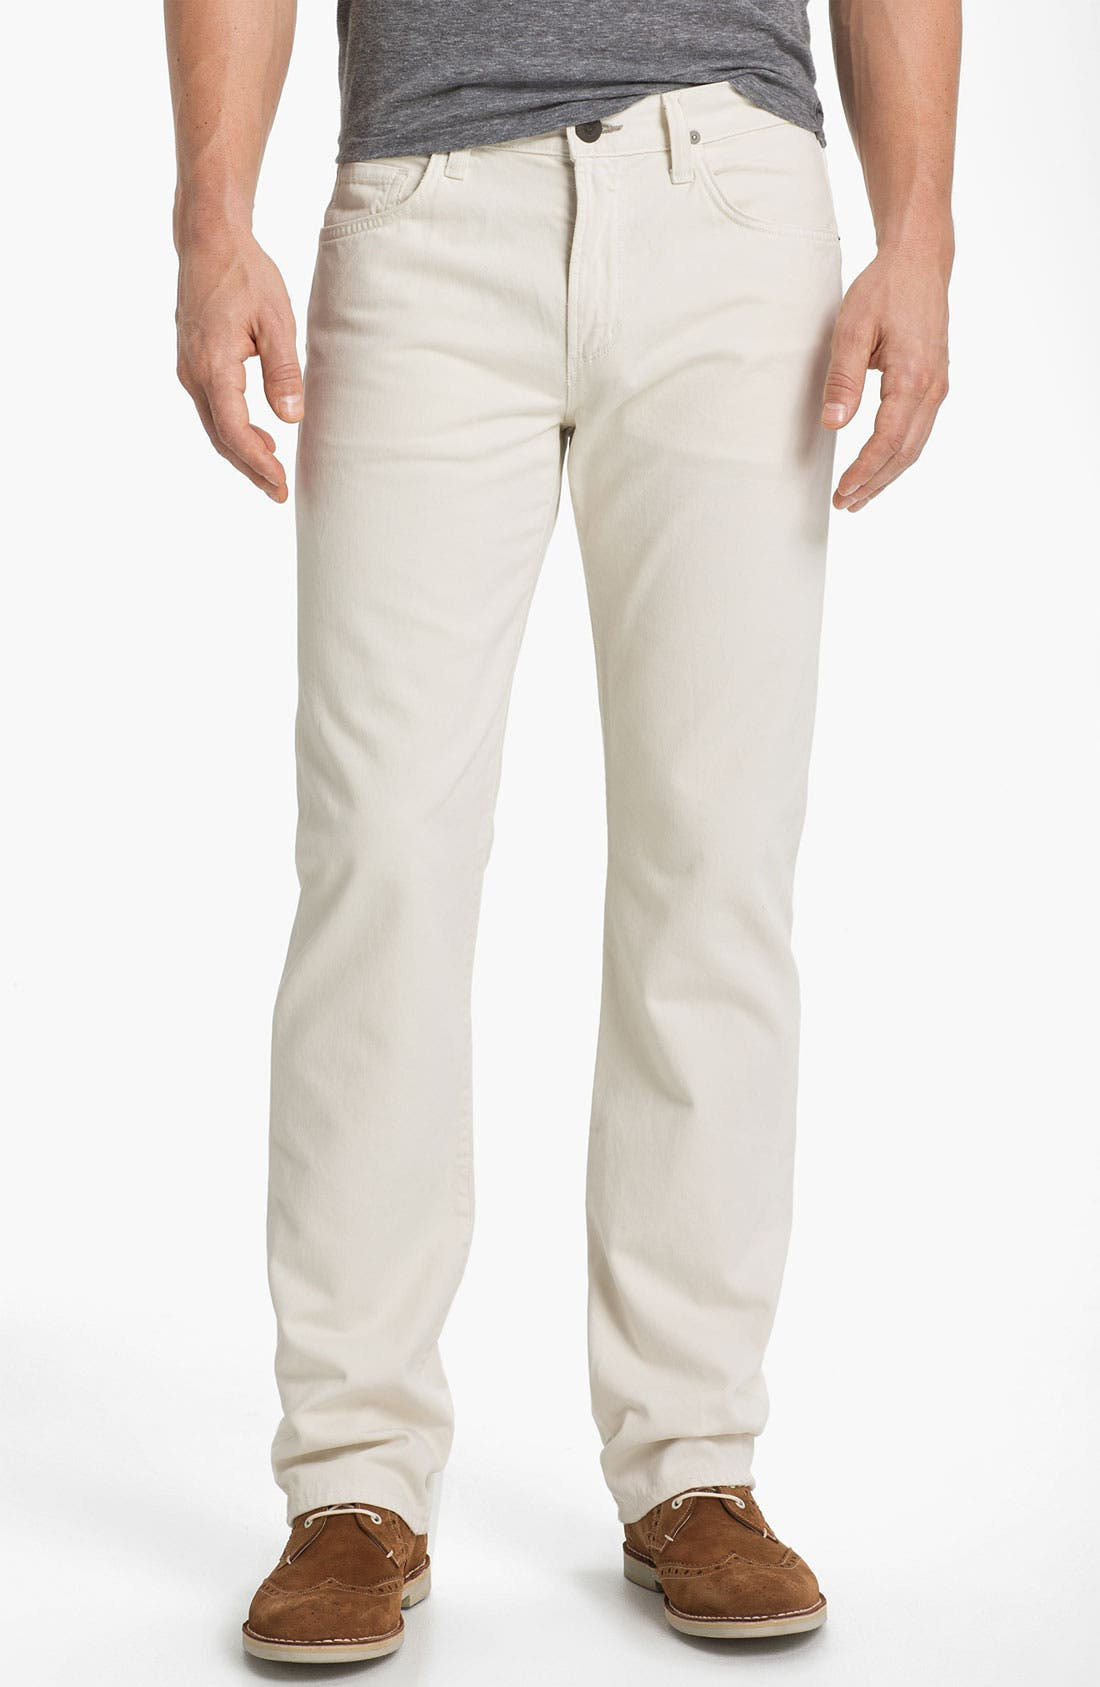 Alternate Image 1 Selected - Citizens of Humanity 'Sid' Straight Leg Pants (Chilton)